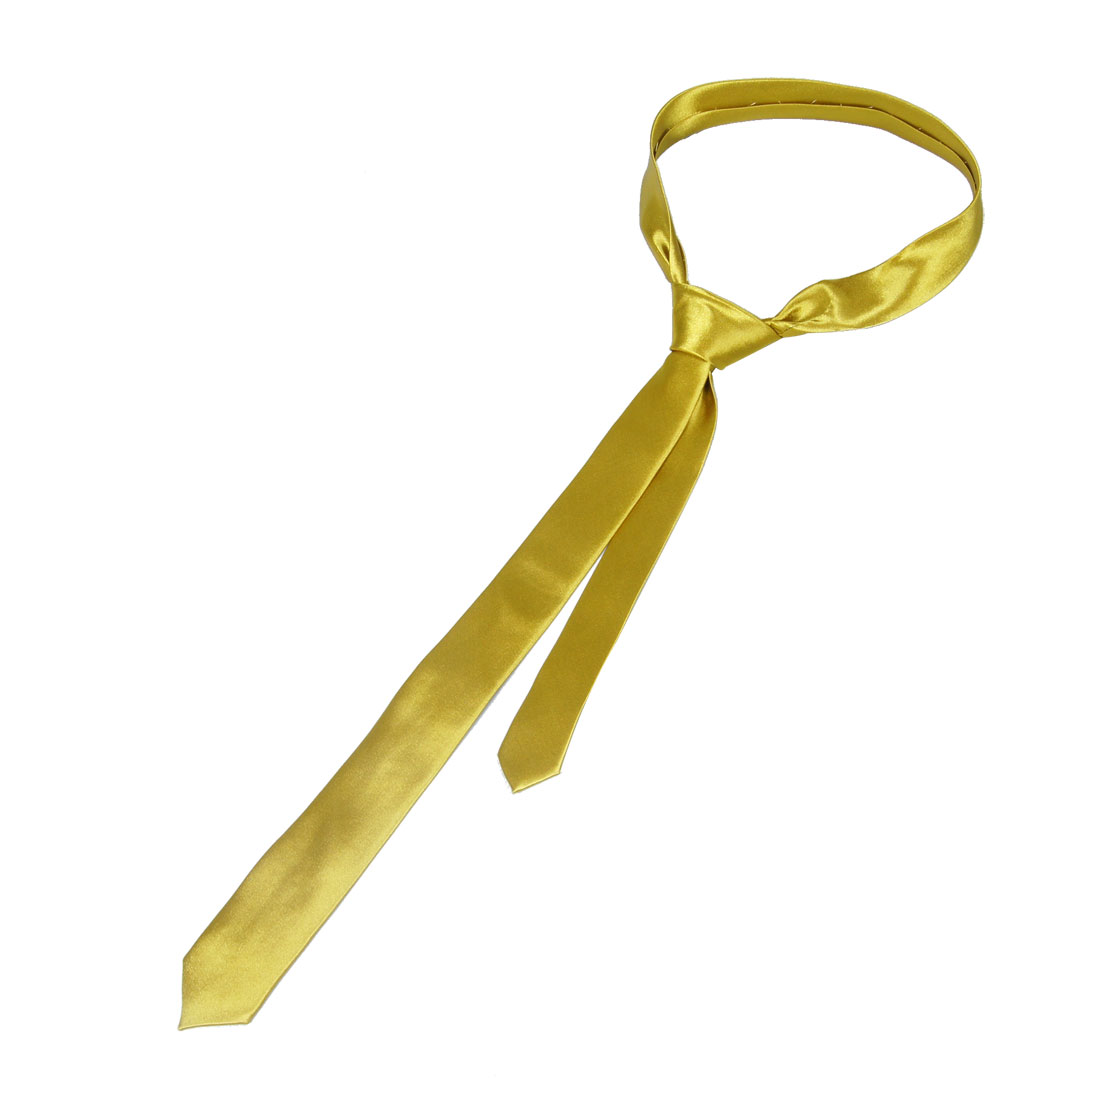 Neck Detail 5cm Wide Self Tie Skinny Necktie Gold Tone for Woman